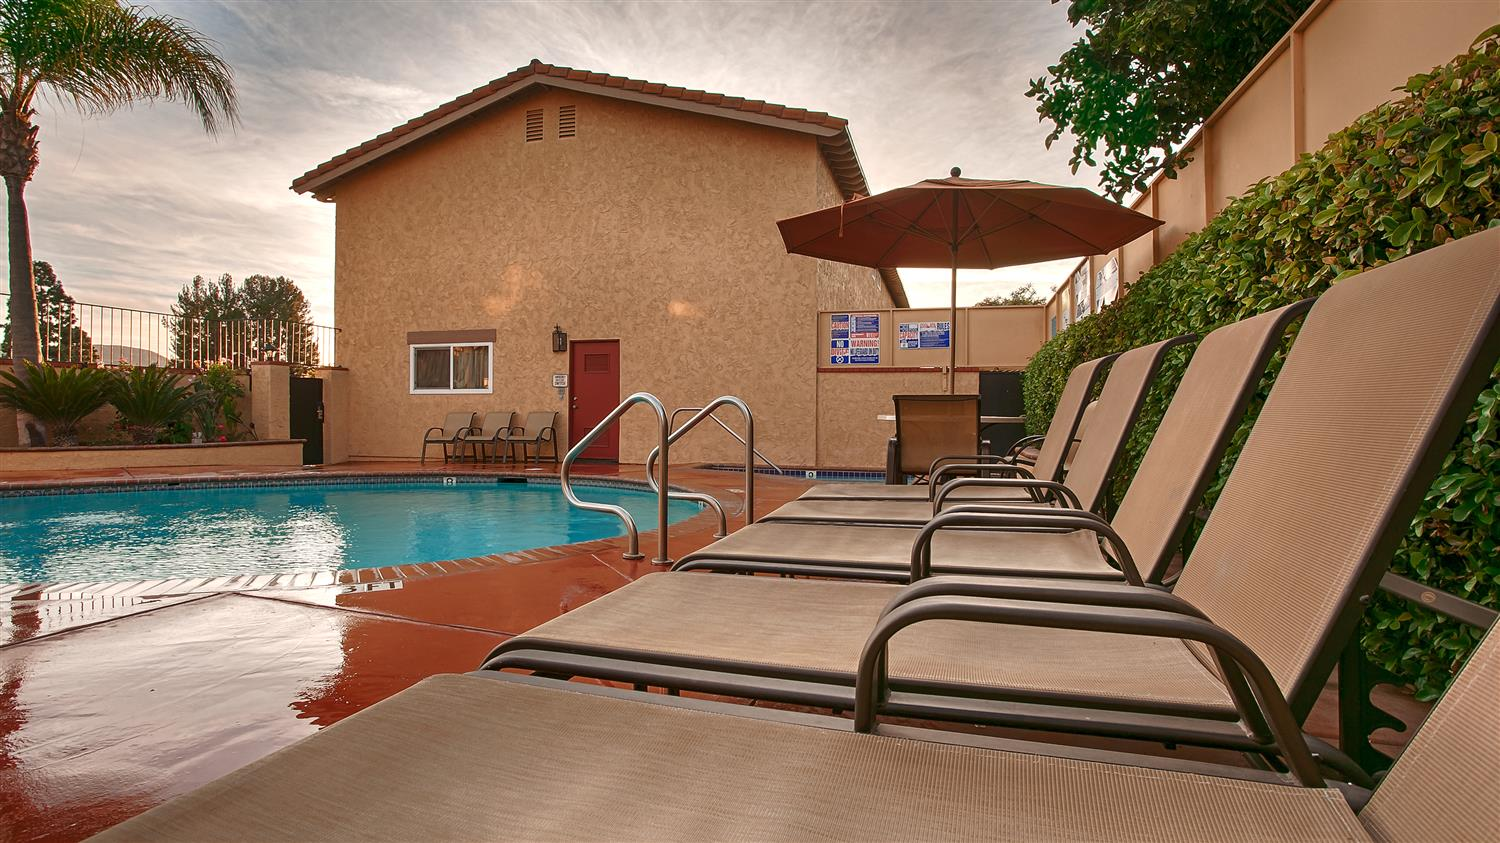 Pool Best Western La Posada Motel Fillmore